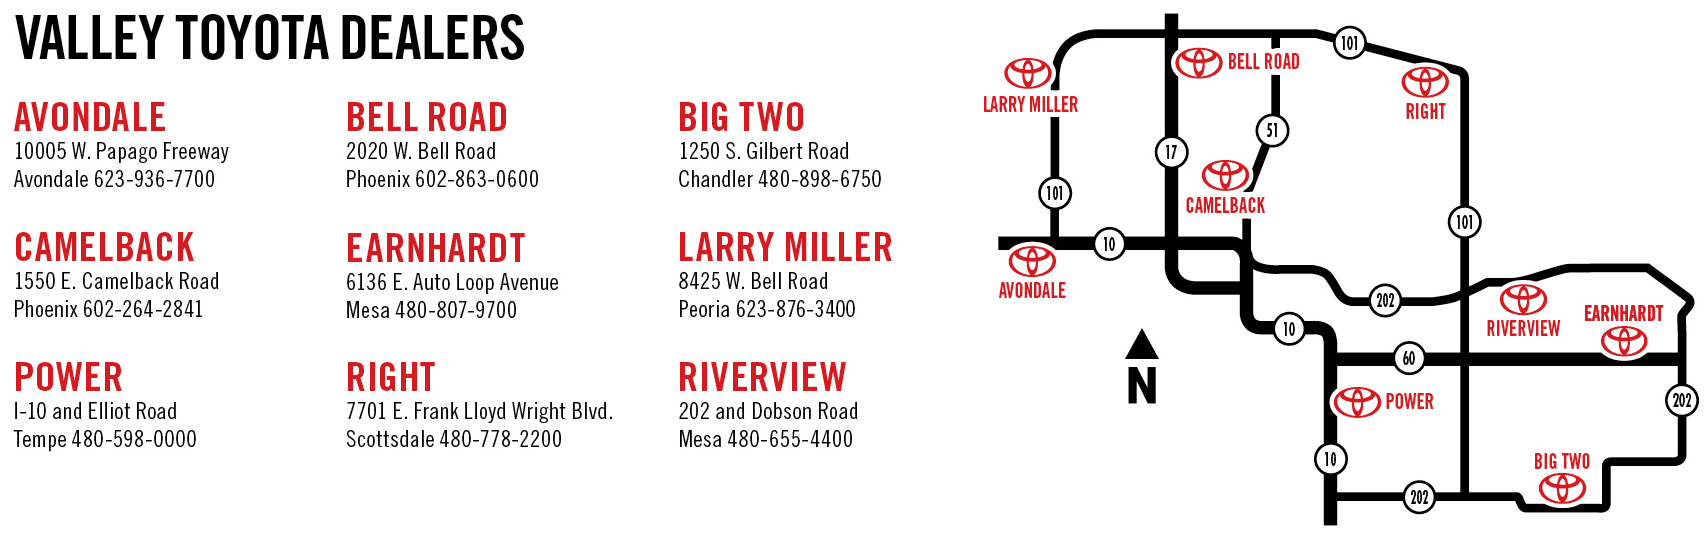 Valley Toyota Dealers map (click to enlarge)